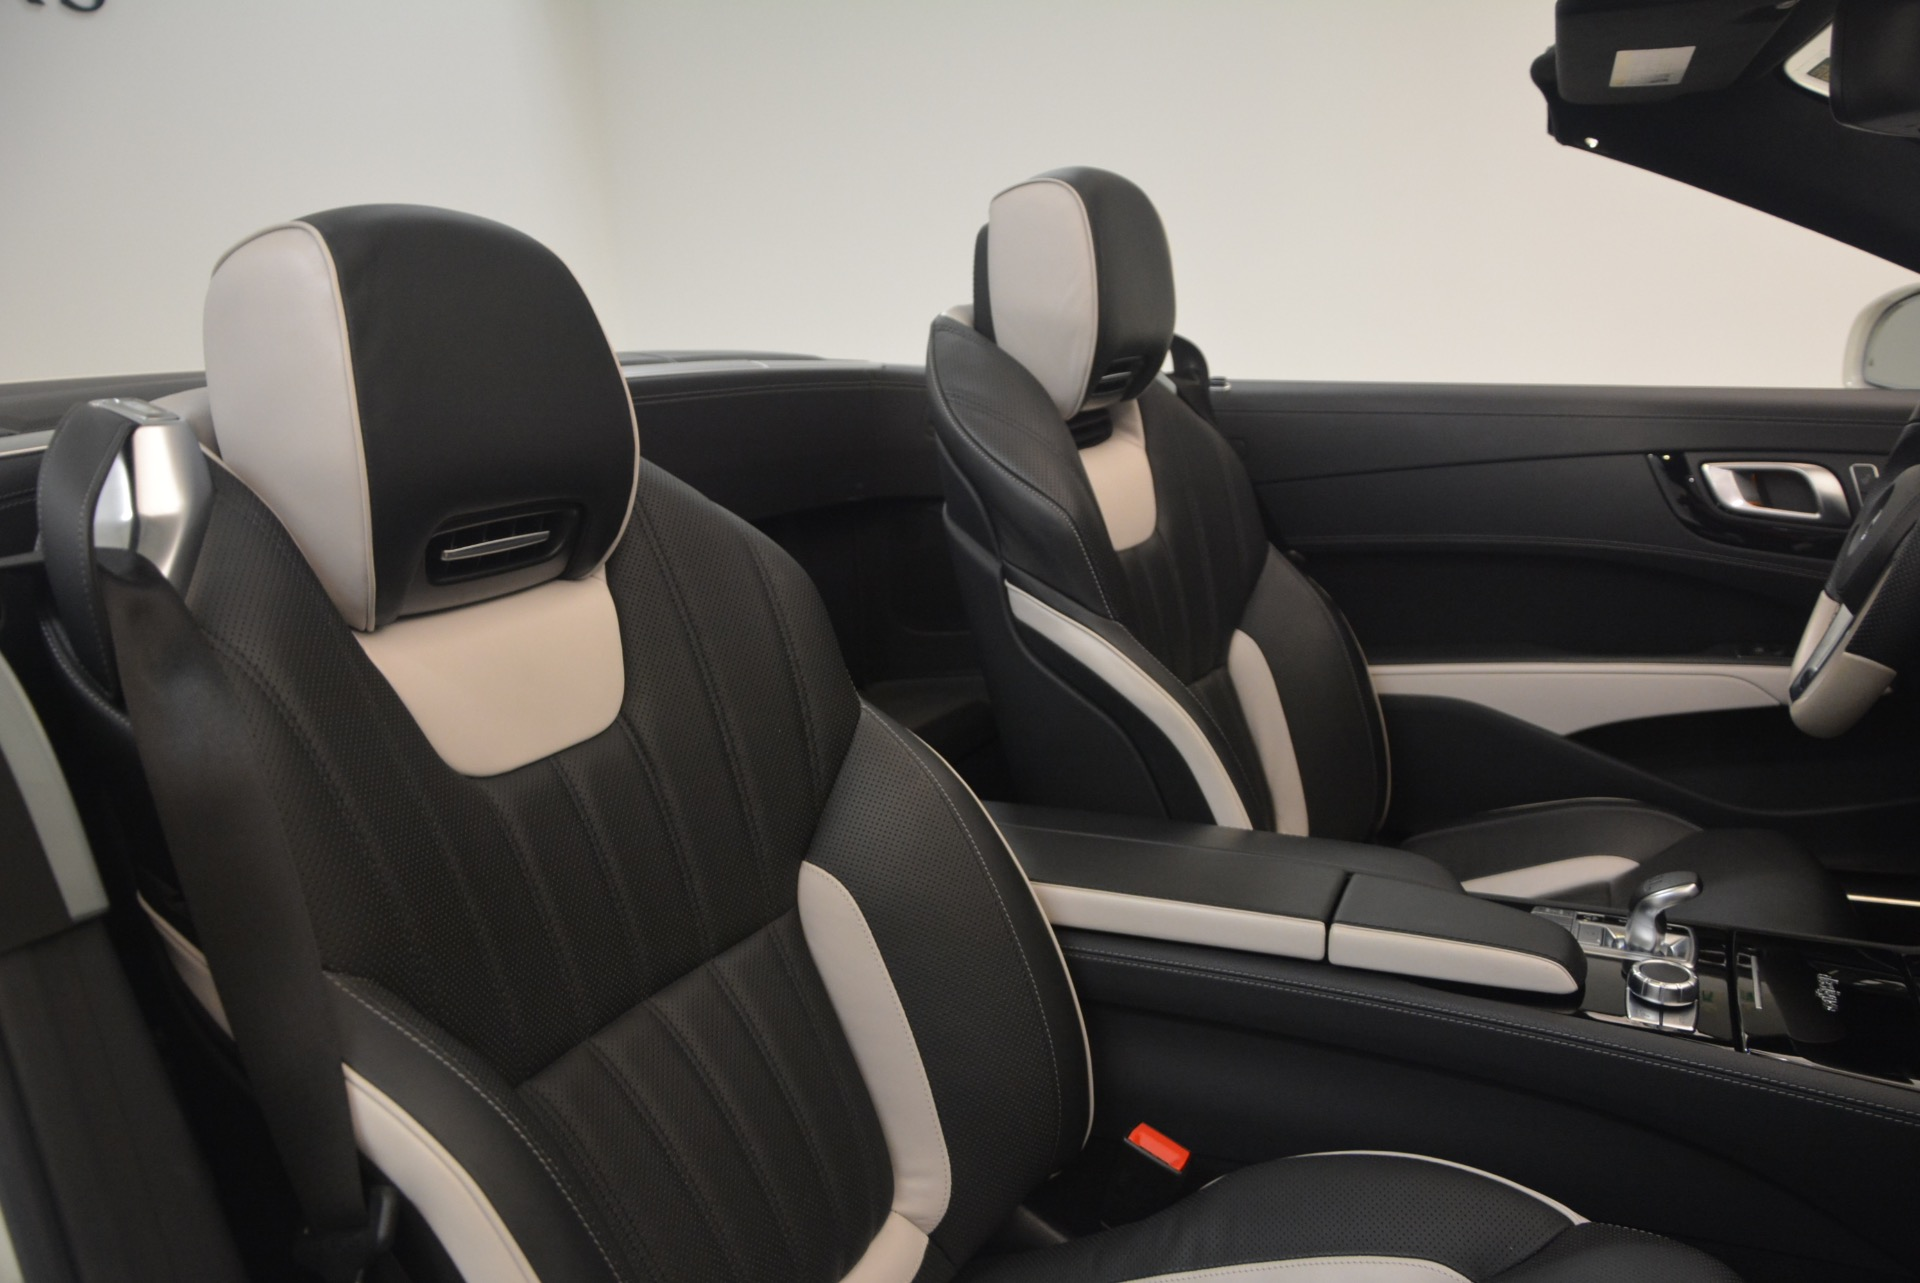 Used 2015 Mercedes Benz SL-Class SL 550 For Sale In Greenwich, CT 1261_p44